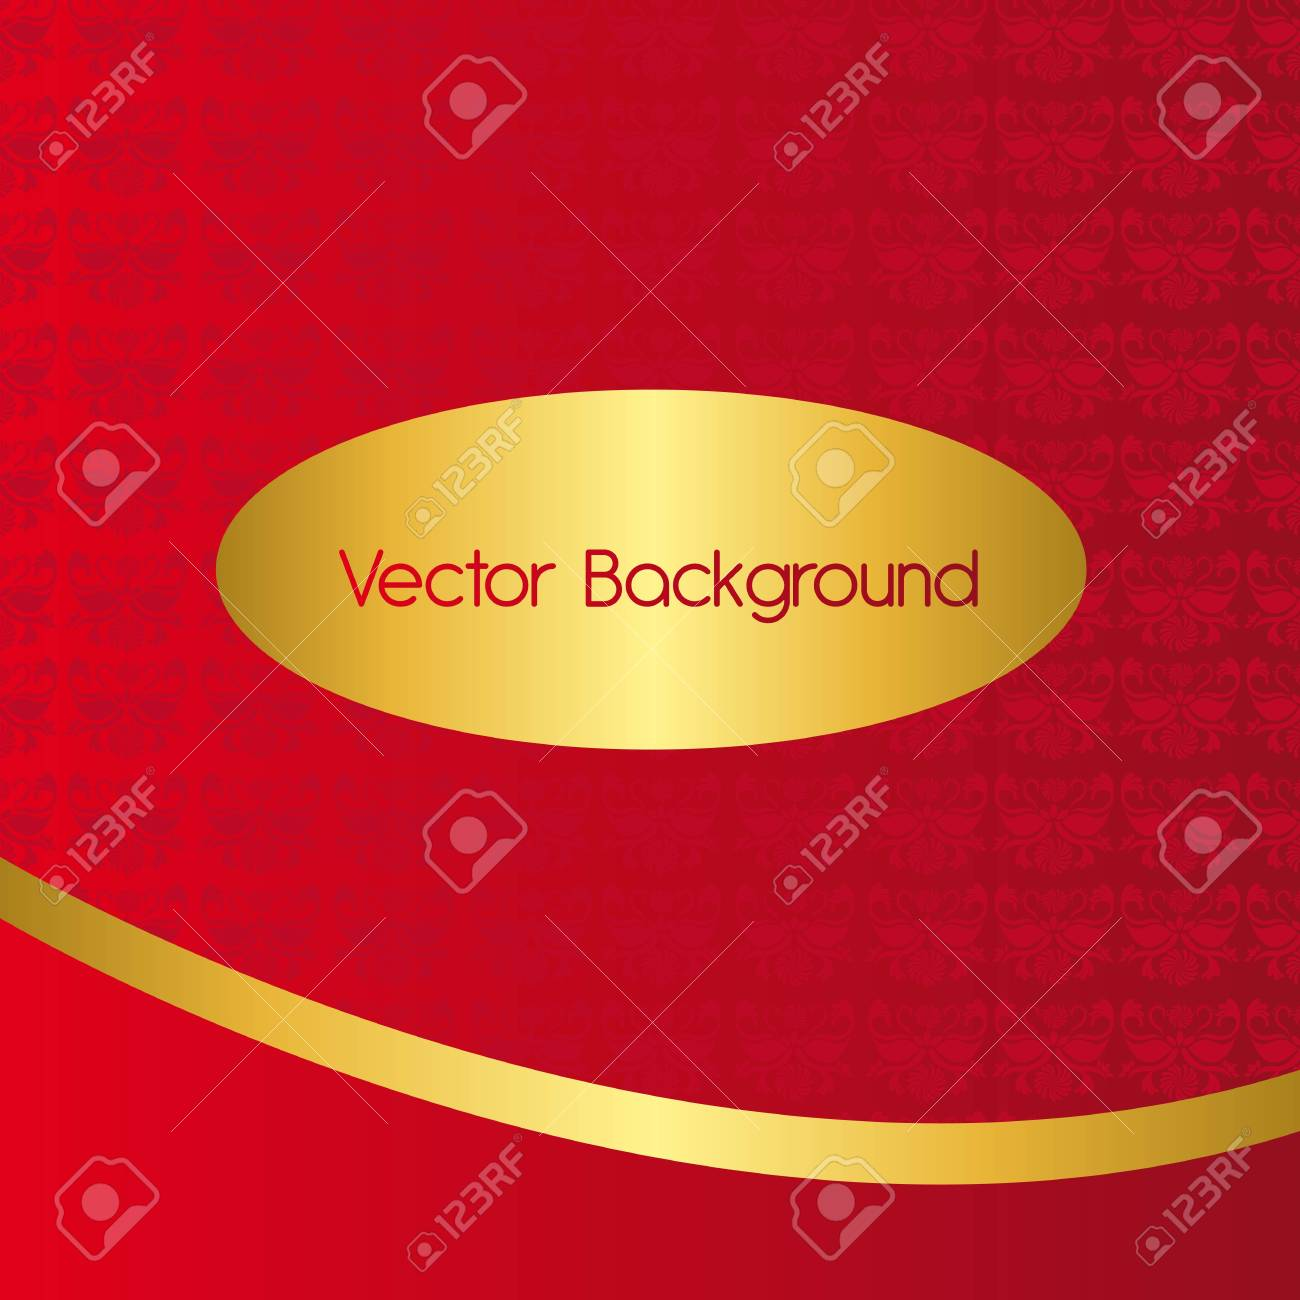 red and gold ornament background. vector illustration Stock Vector - 11890382